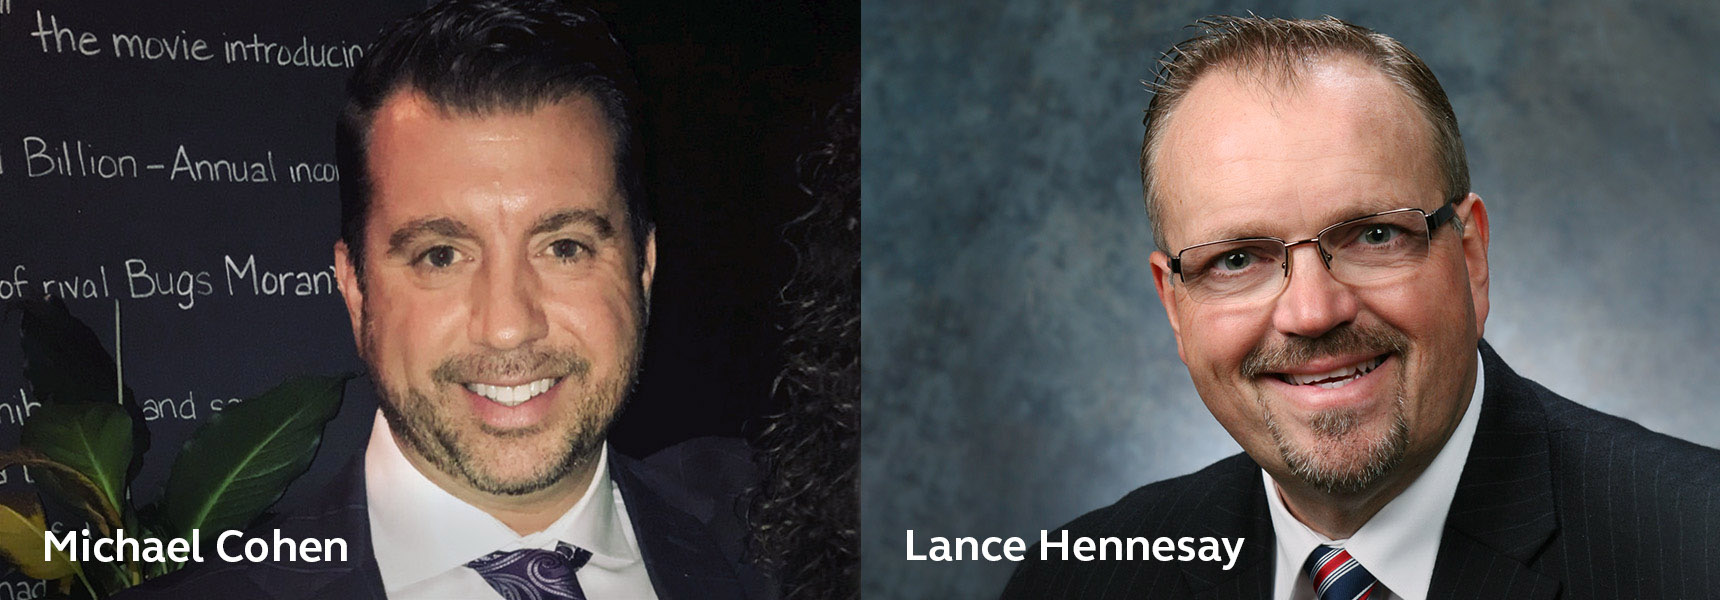 Michael Cohen and Lance Hennesay